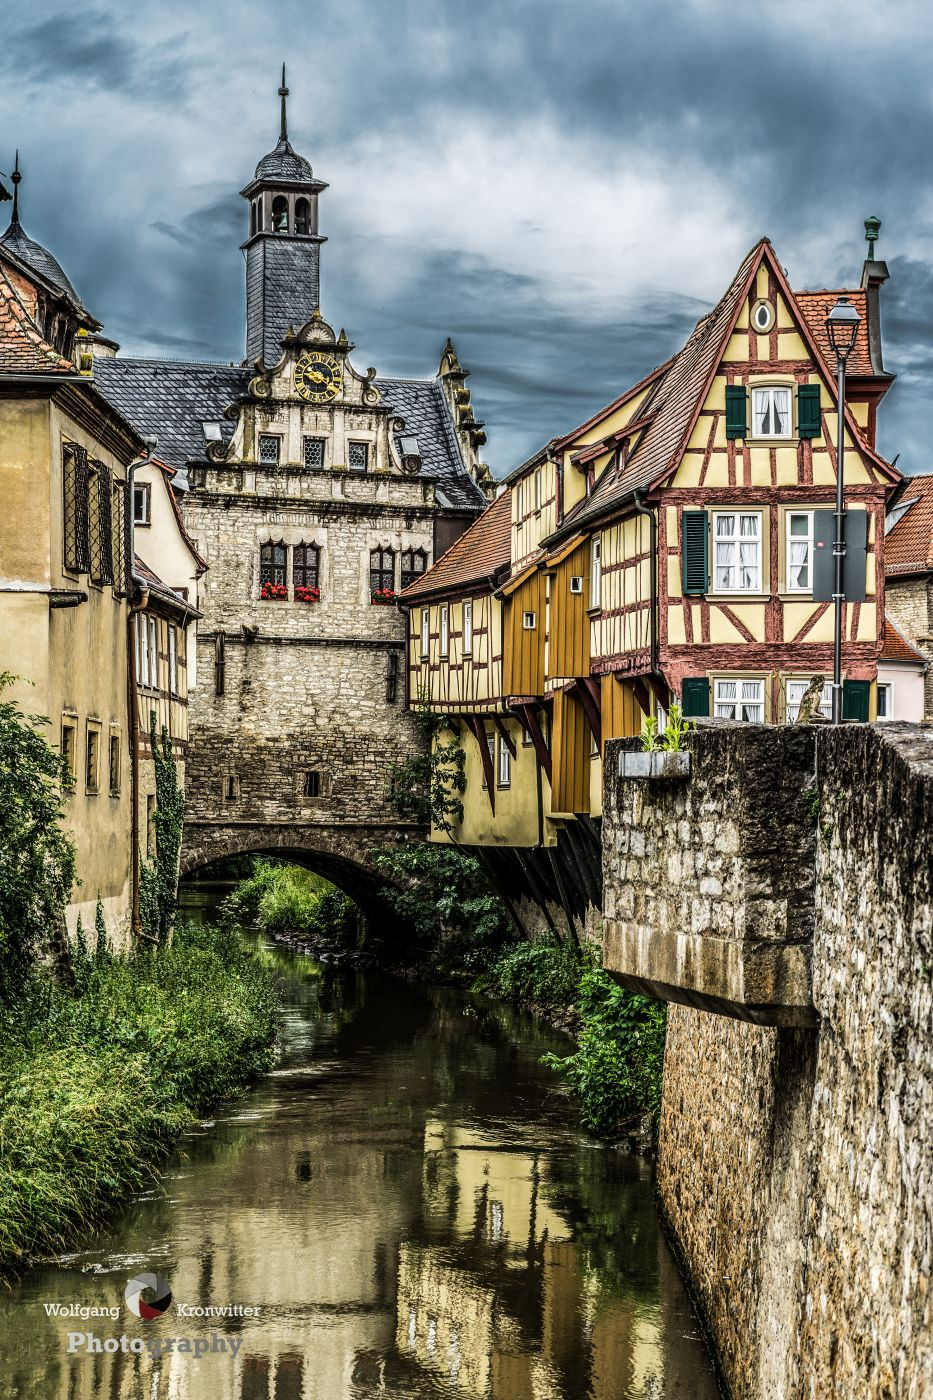 walking truh the middle age, Germany